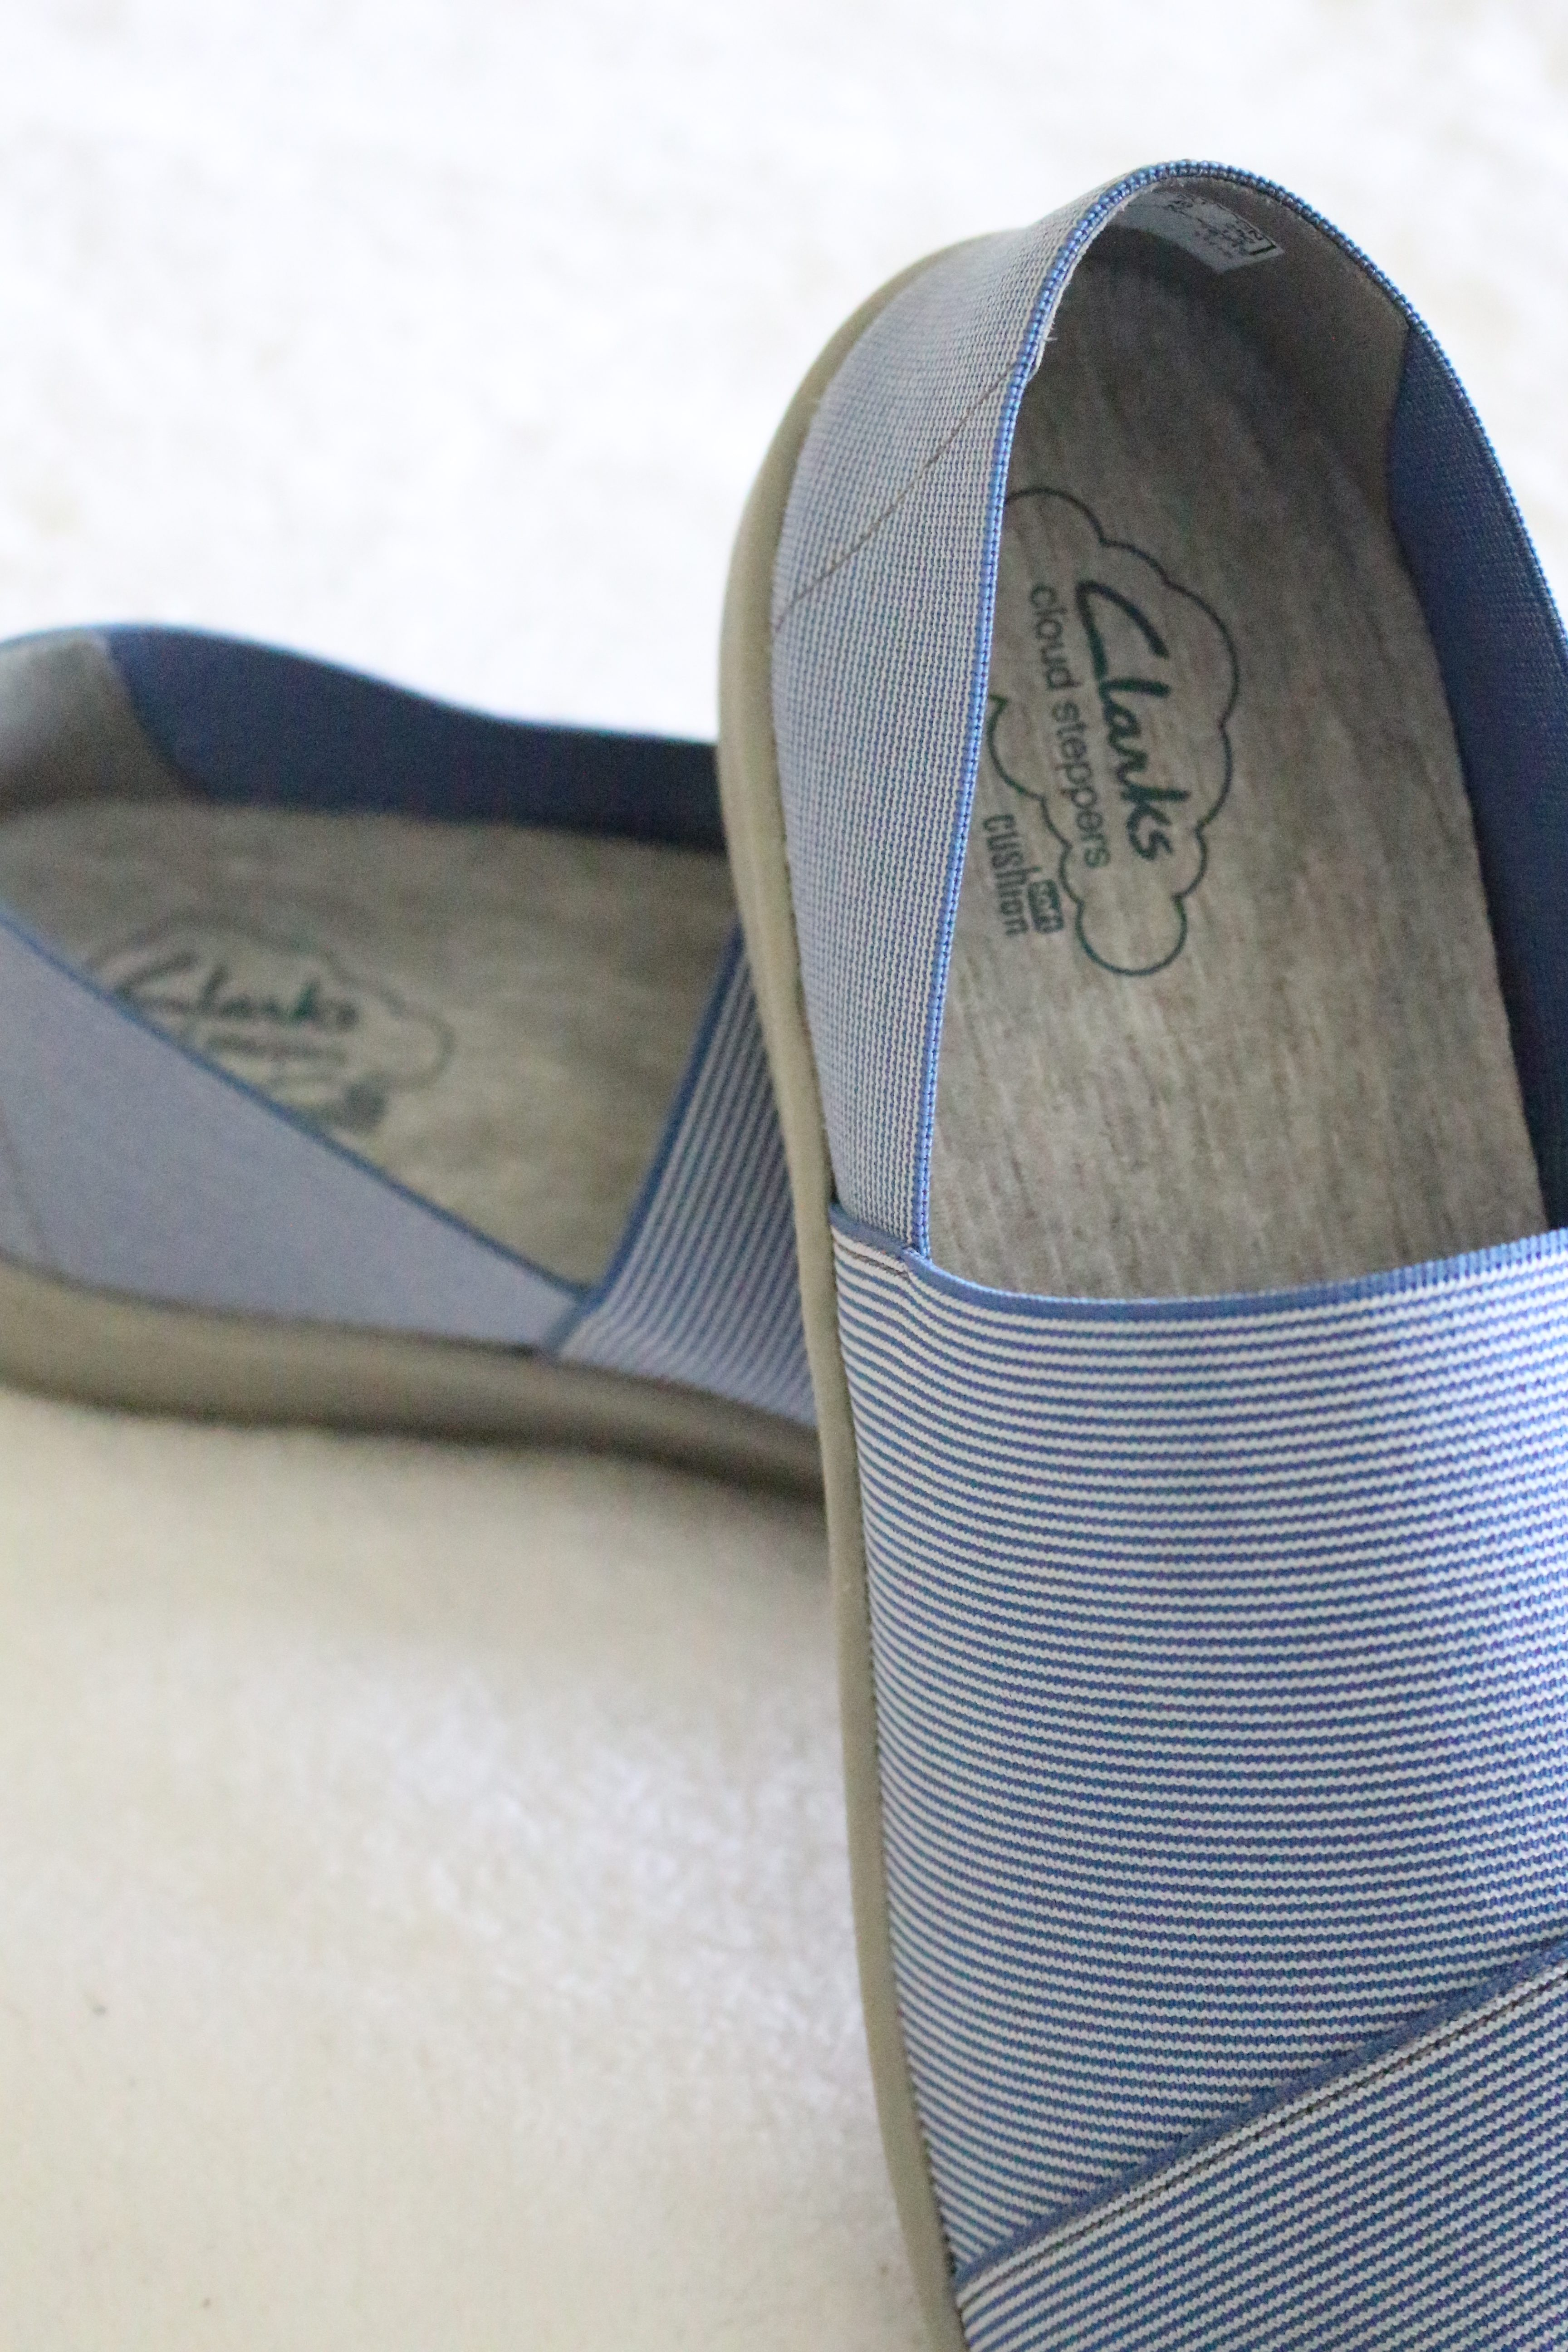 Clarks cloud stepper for versatile shoes with comfort by www.mylifefromhome.com